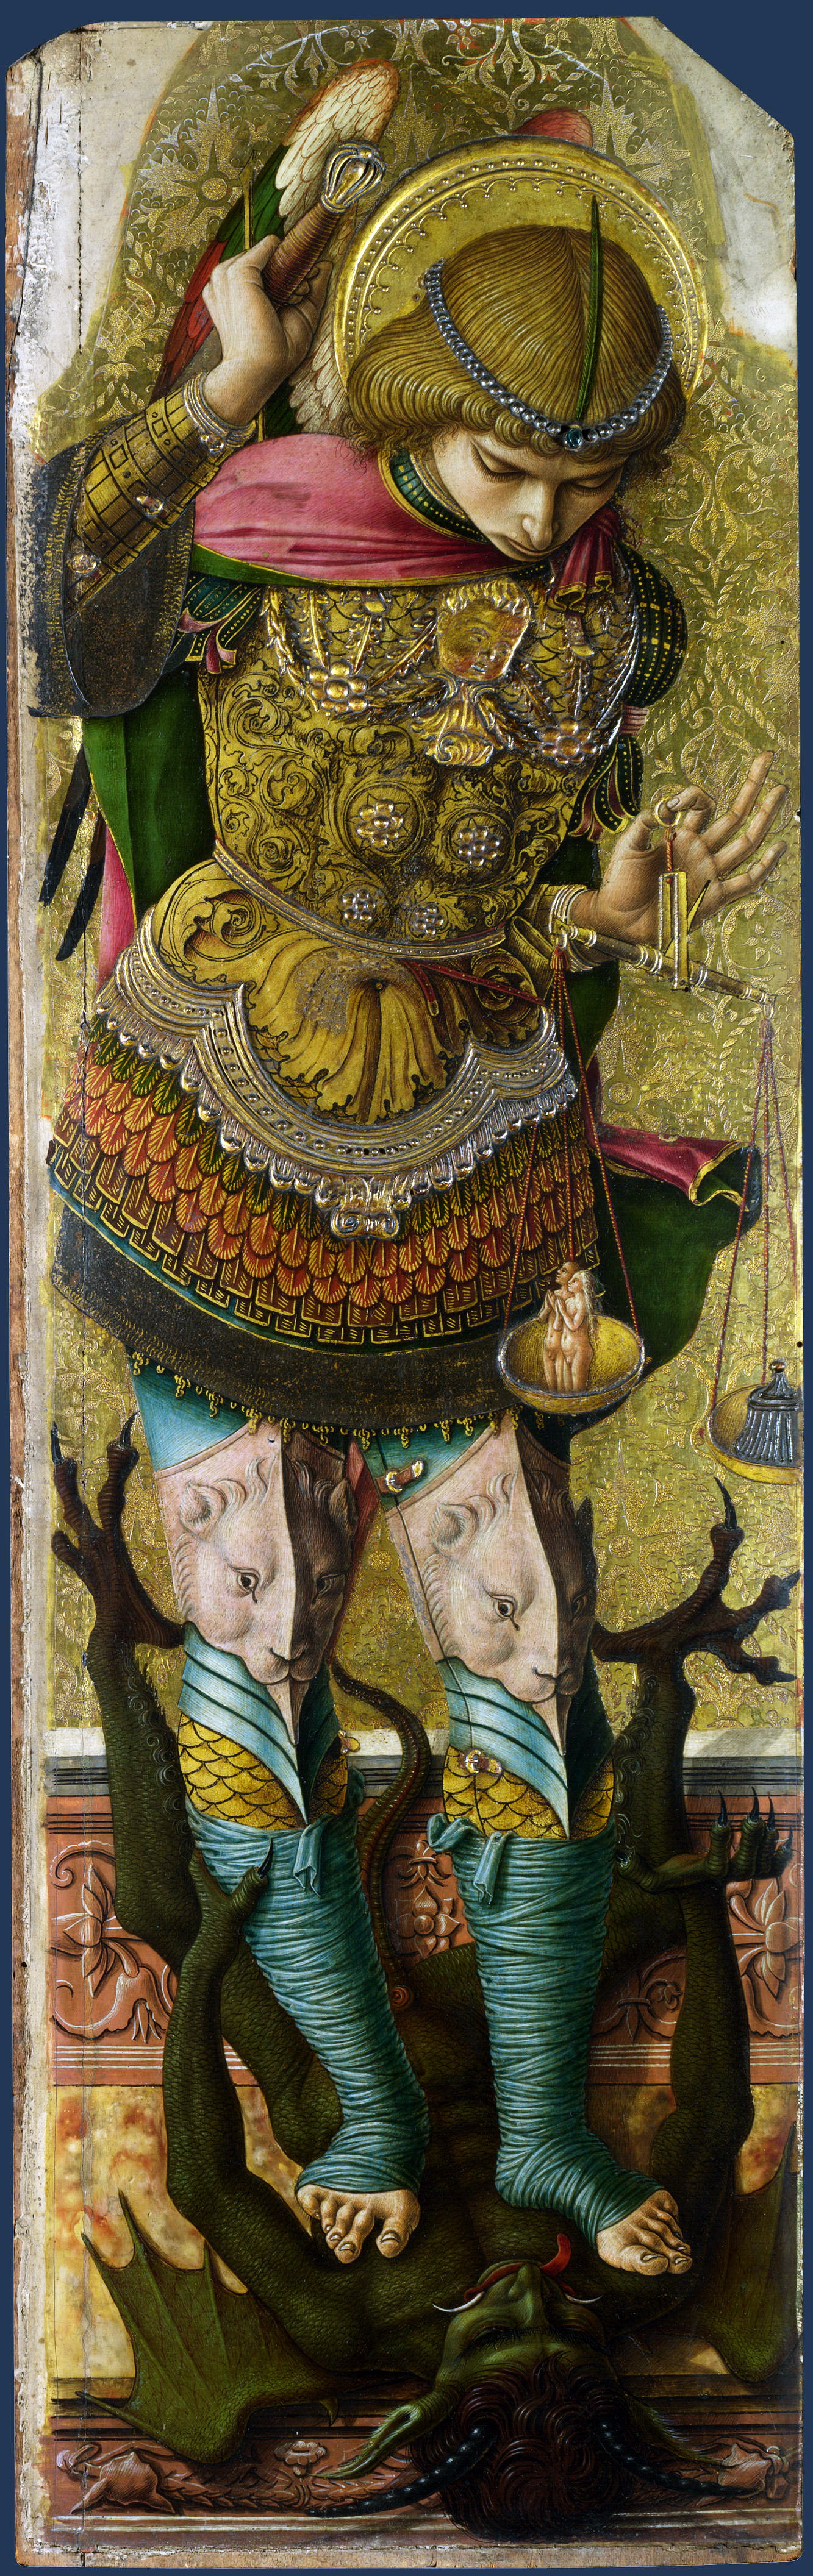 Carlo Crivelli. The Archangel Michael. Altarpiece of St. Peter Martyr, left wing, outer side